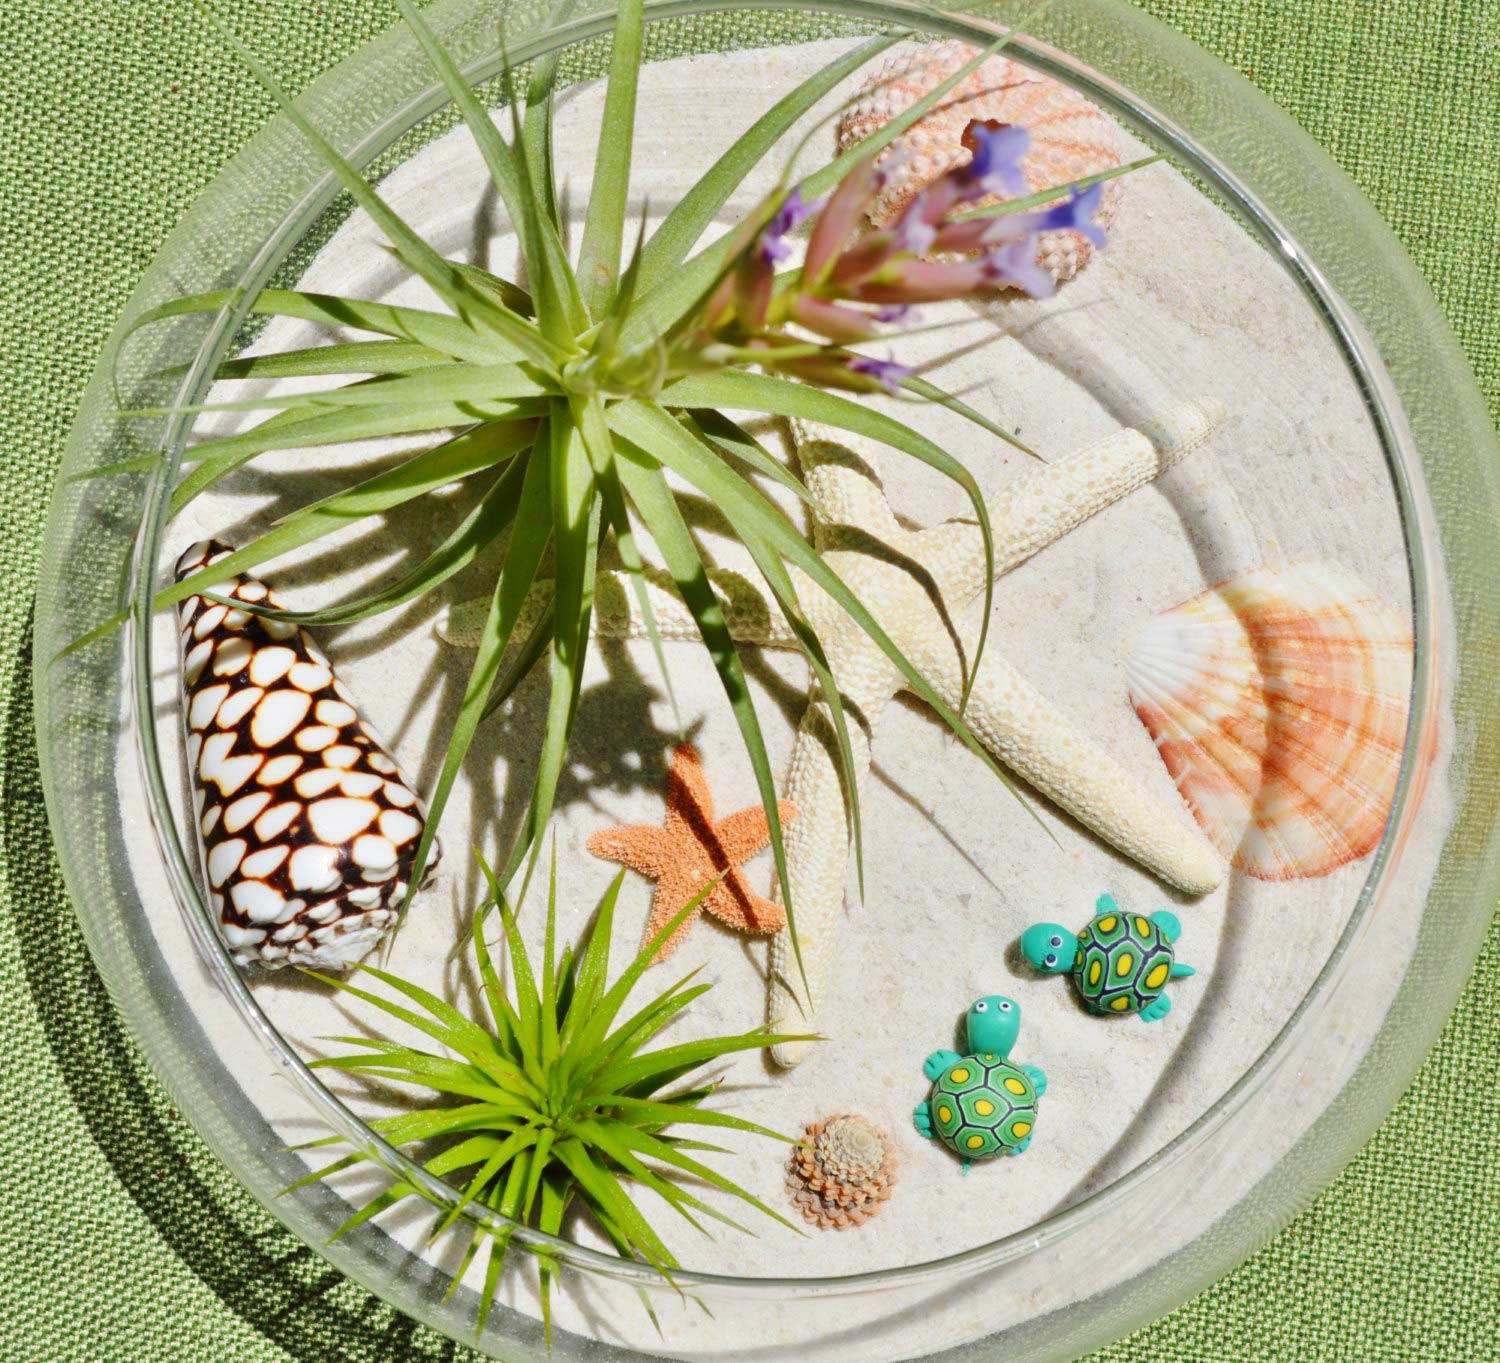 Beach glass terrarium with sand and shells